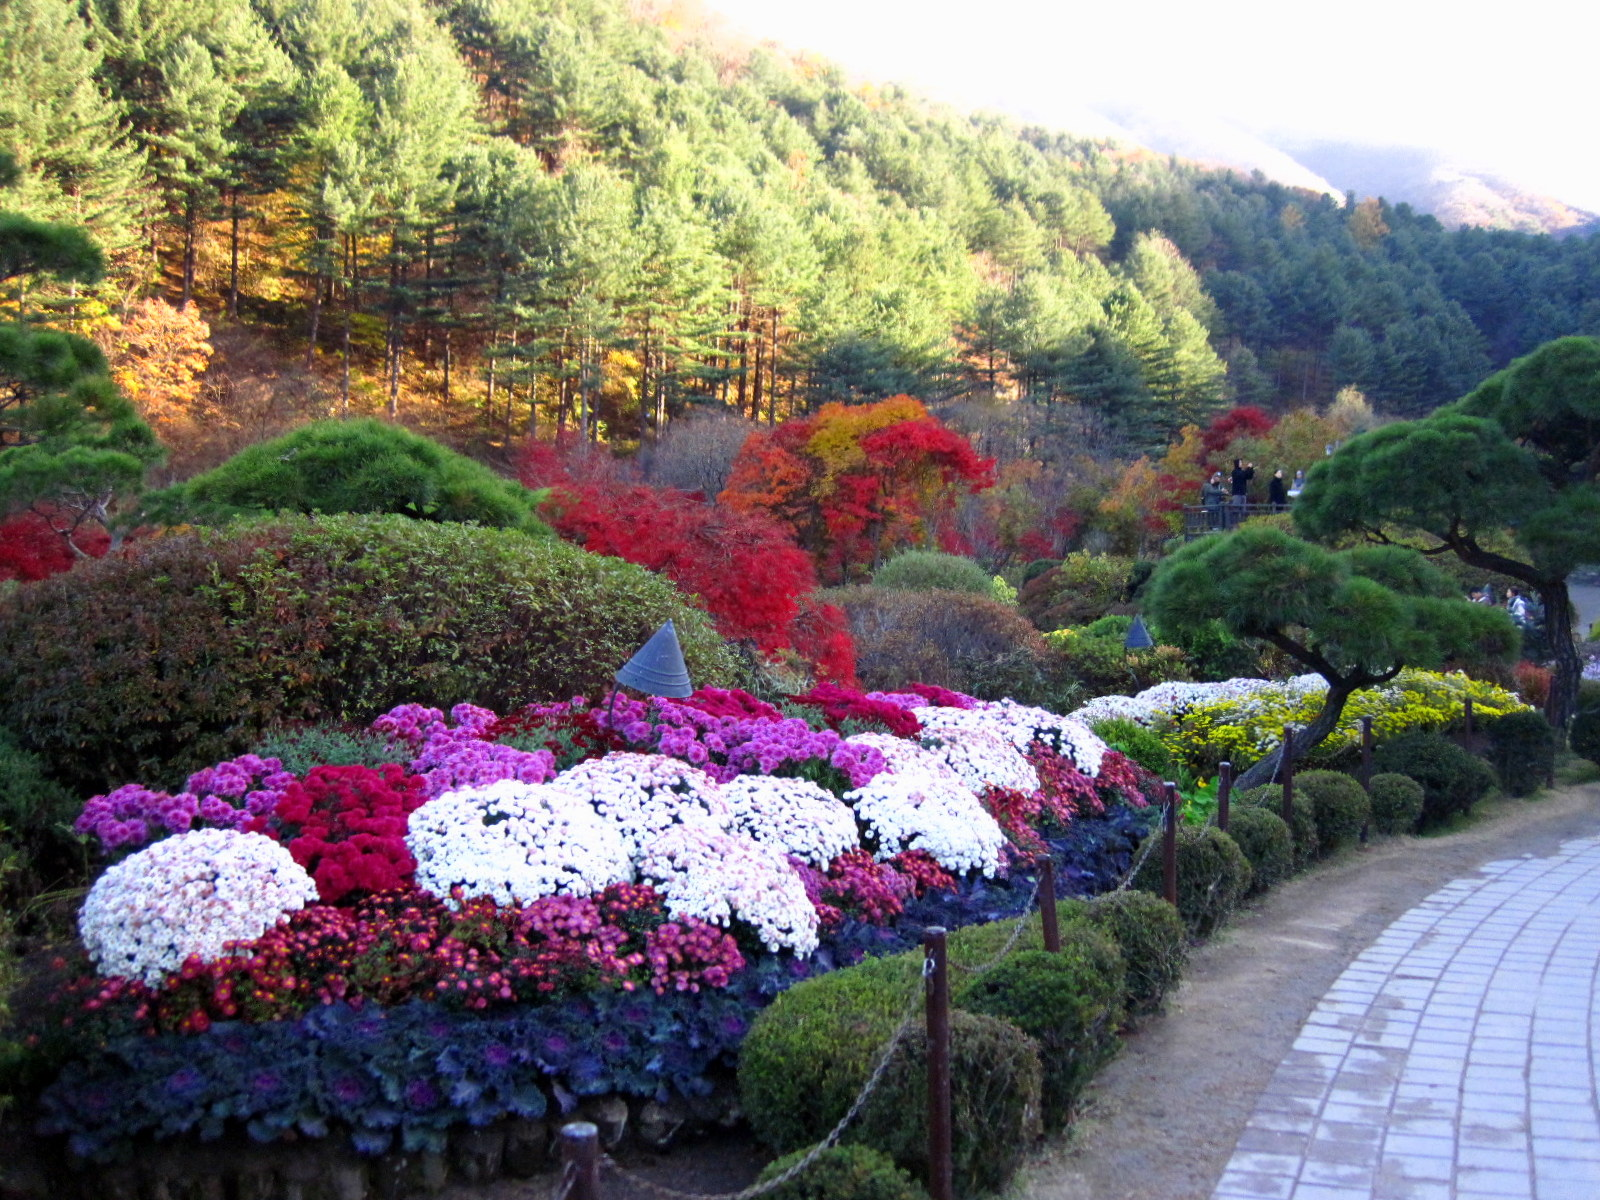 The Colors Of Korea Burst At Gapyeongs Garden Morning Calm A Sprawling Paradise On Land 33 Hectares Where Variety Festivals And